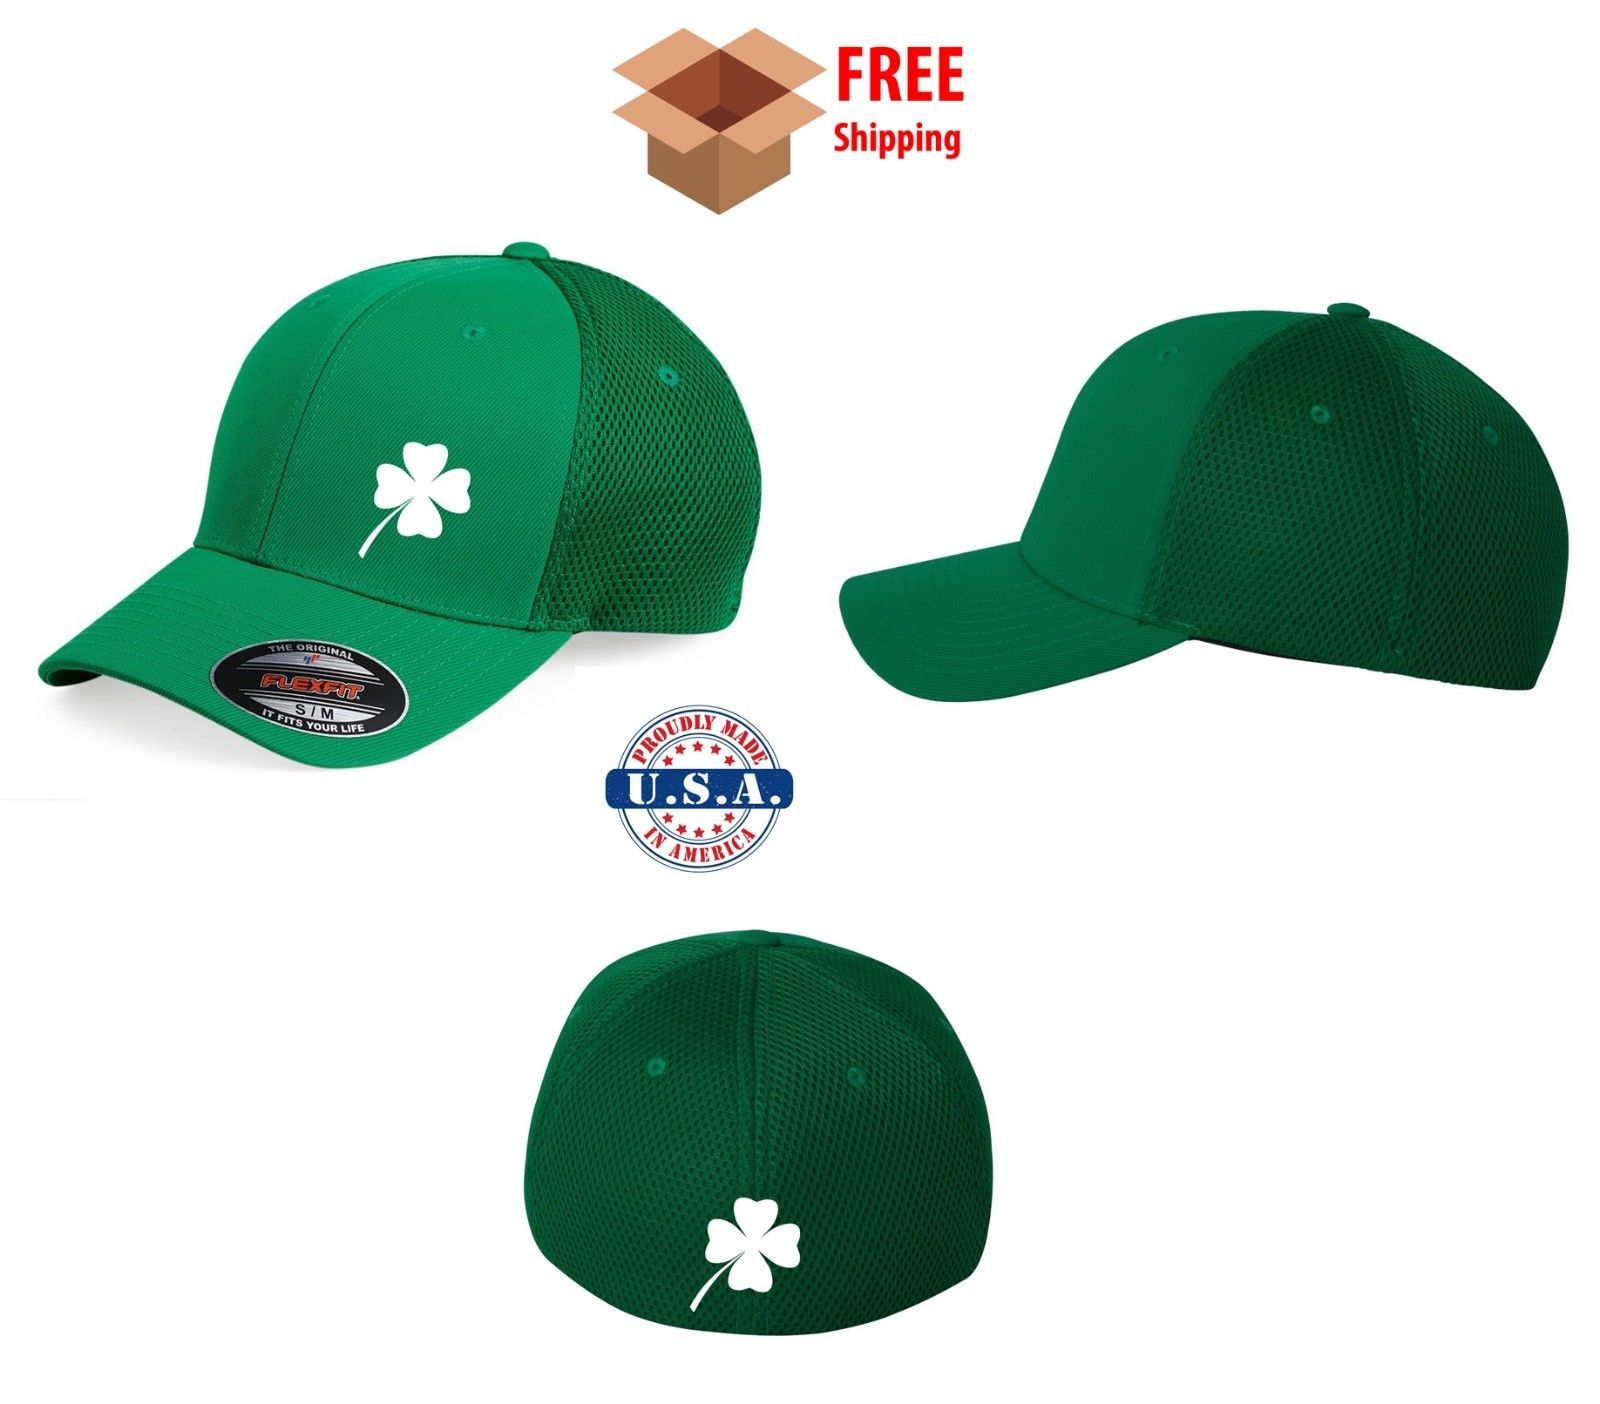 Primary image for KISS ME ST PATRICK'S IRISH Saint Patty's Day Flex Fit HAT *FREE SHIPPING in BOX*